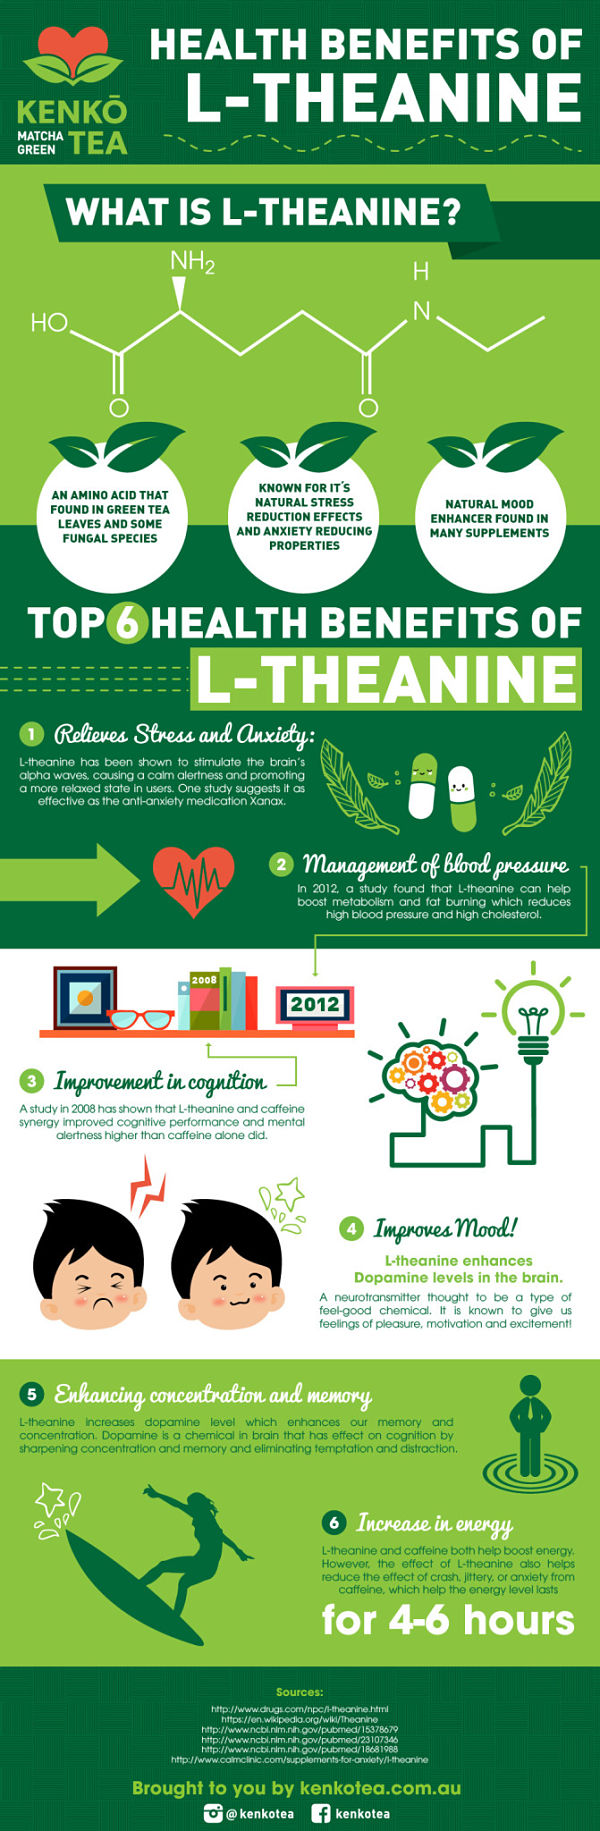 Infographic of L-theanine health benefits